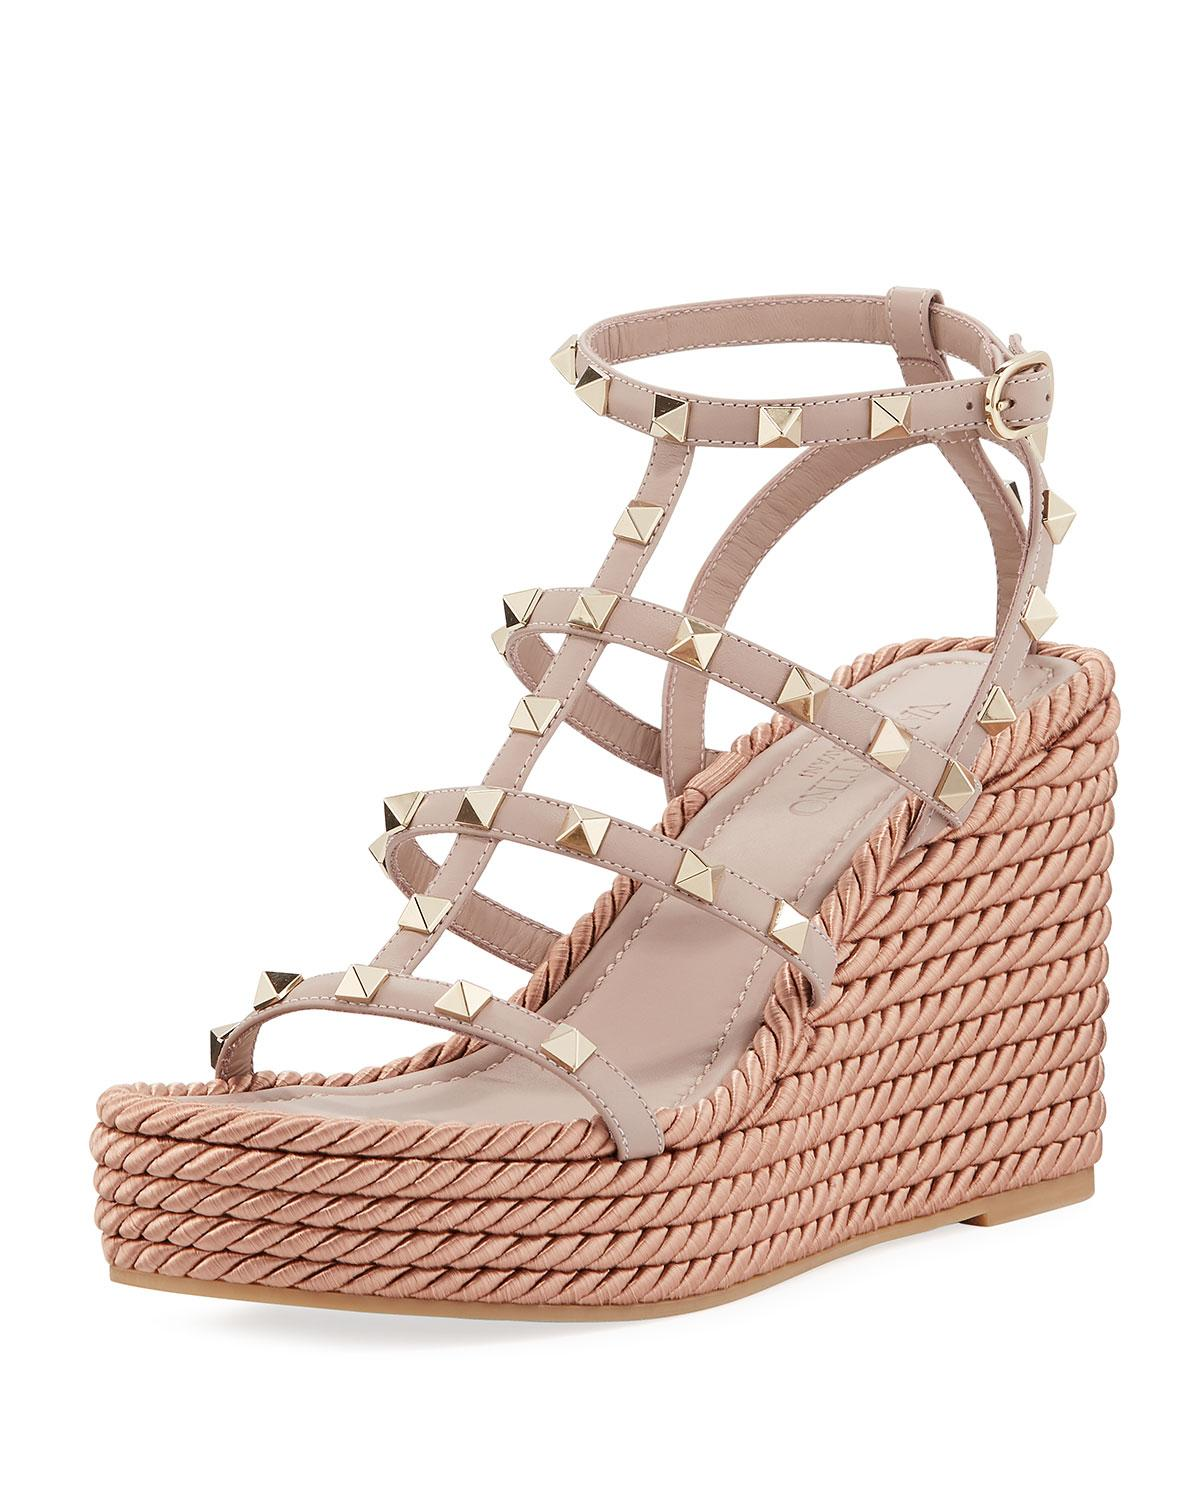 7d466fc51 Valentino Rockstud Caged Wedge Sandals in Natural - Lyst